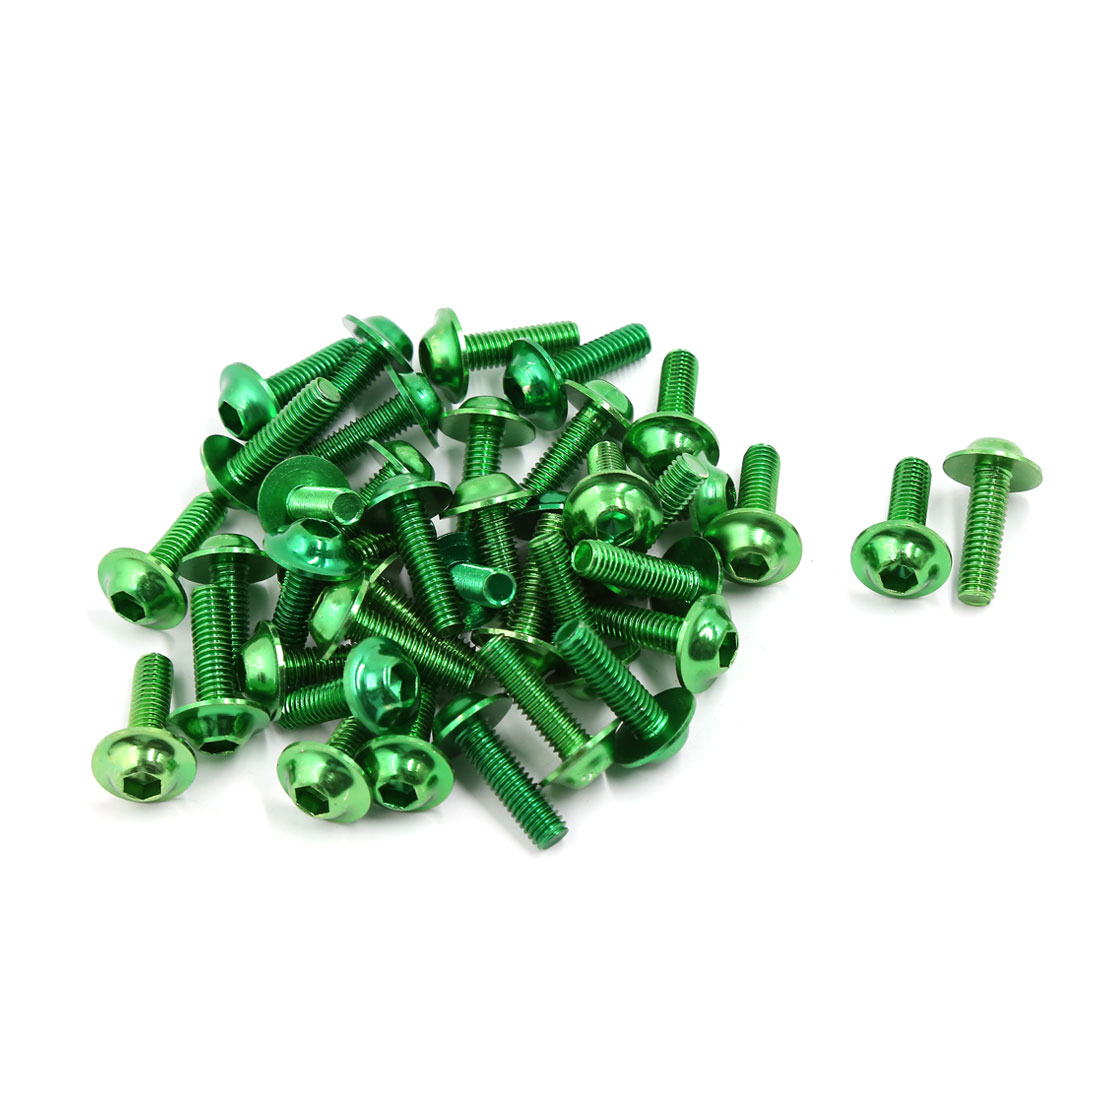 40 Pcs Universal 6mm Thread Dia Hexagonal Bolts Screws Green for Motorcycle